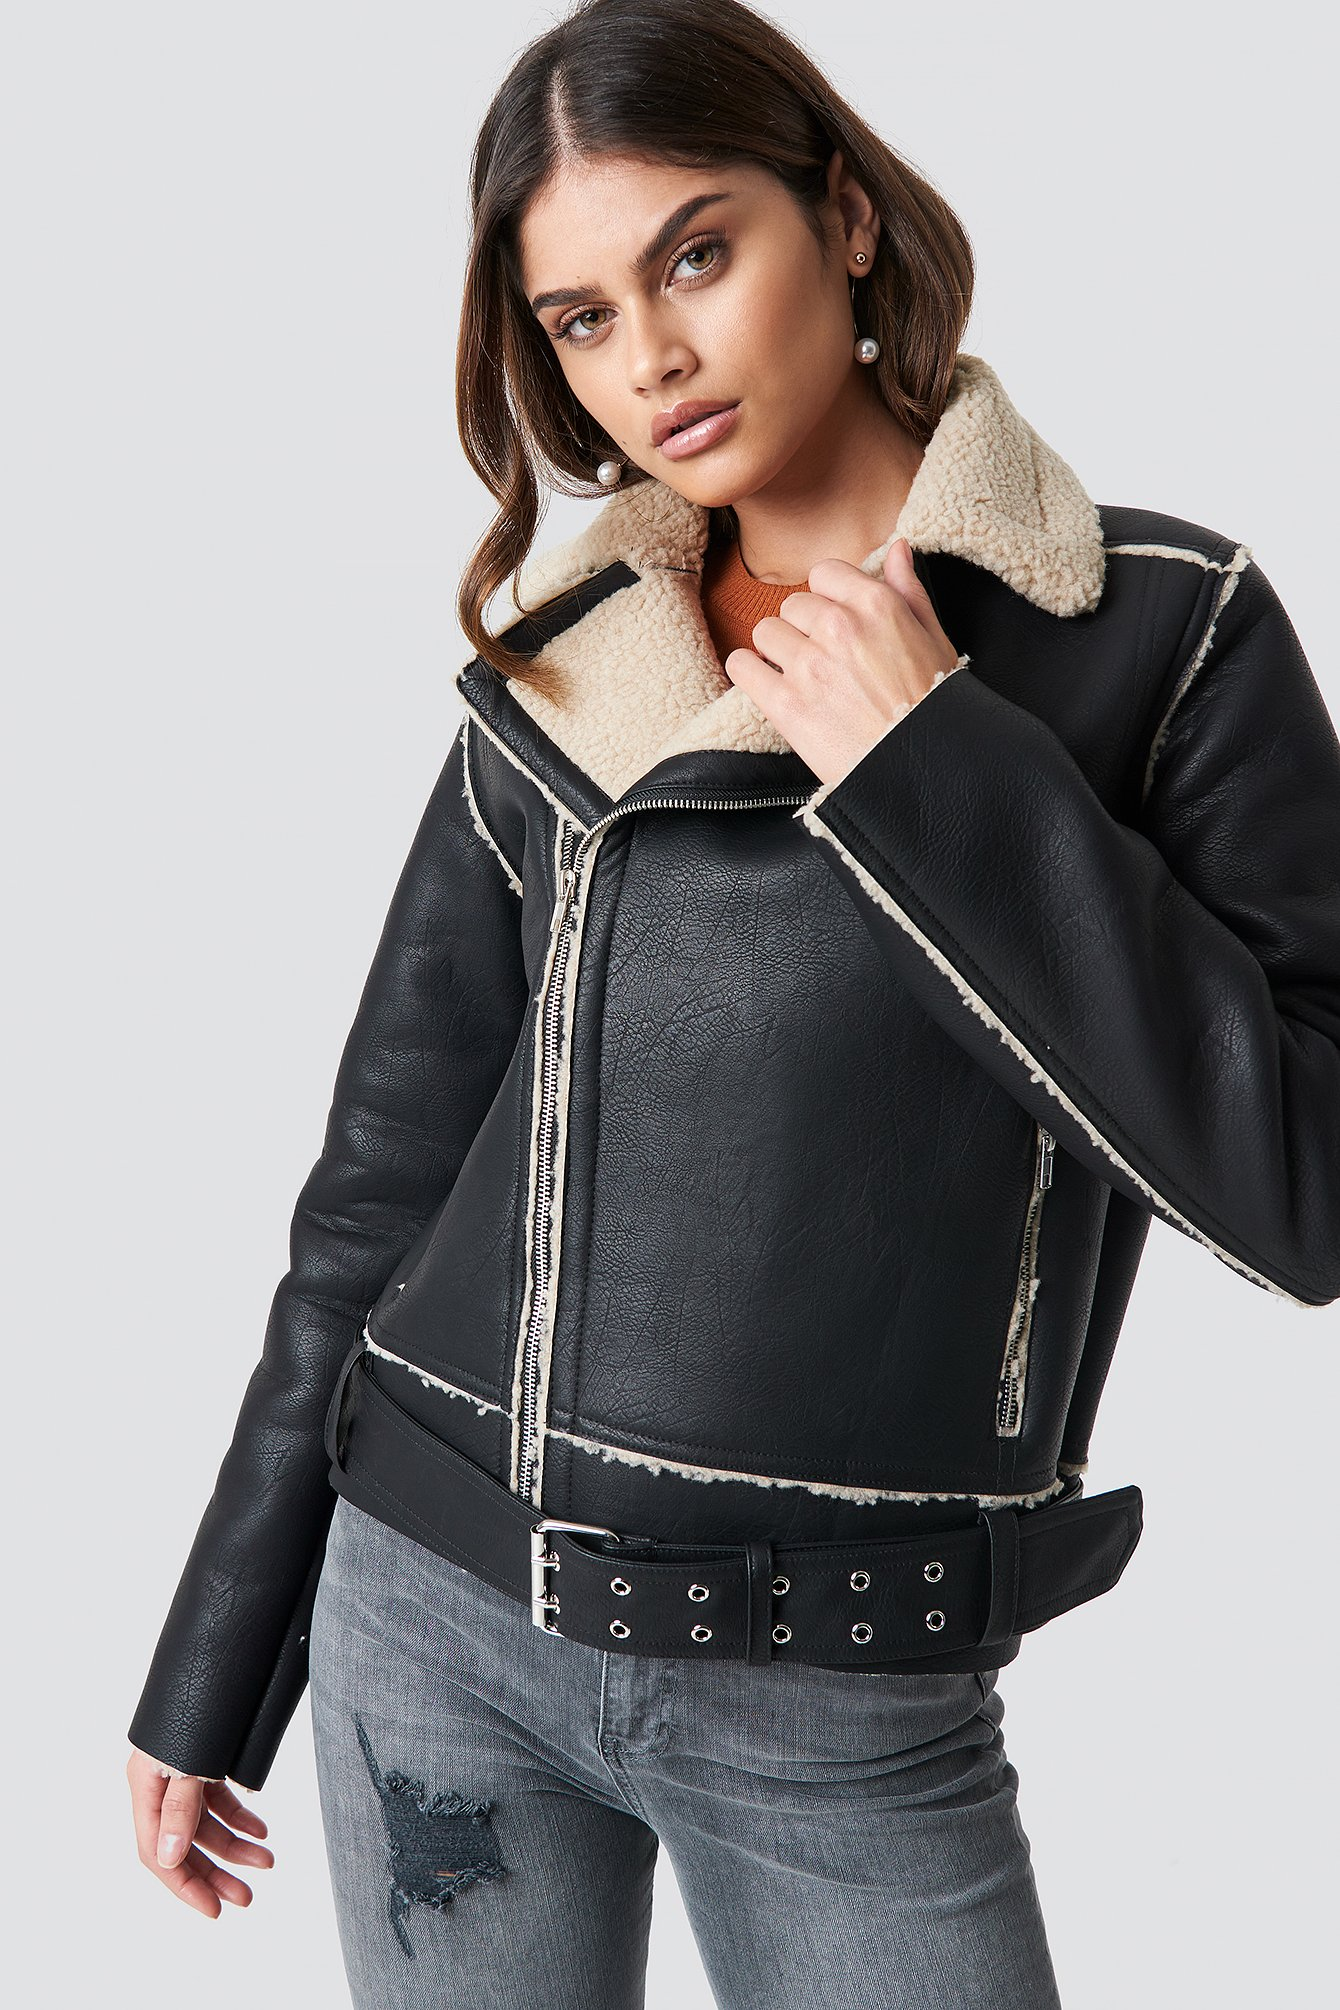 luisa lion x na-kd -  Belted Biker Jacket - Black